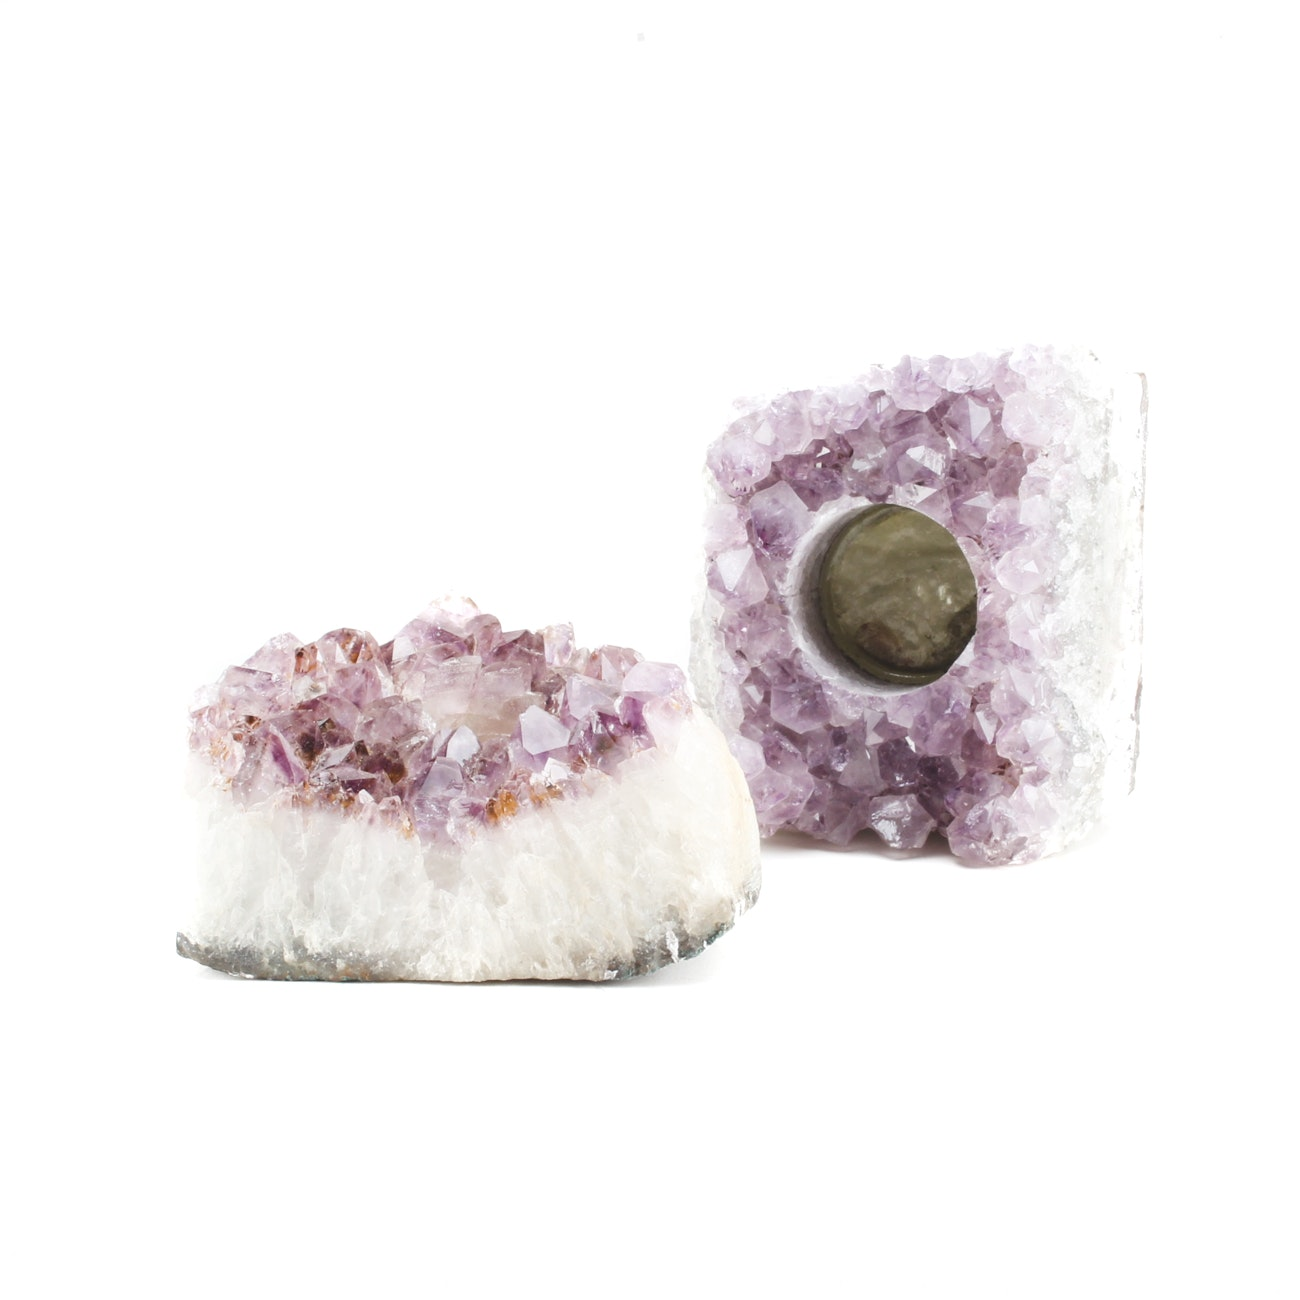 Pair of Amethyst and Quartz Geode Candle Holders